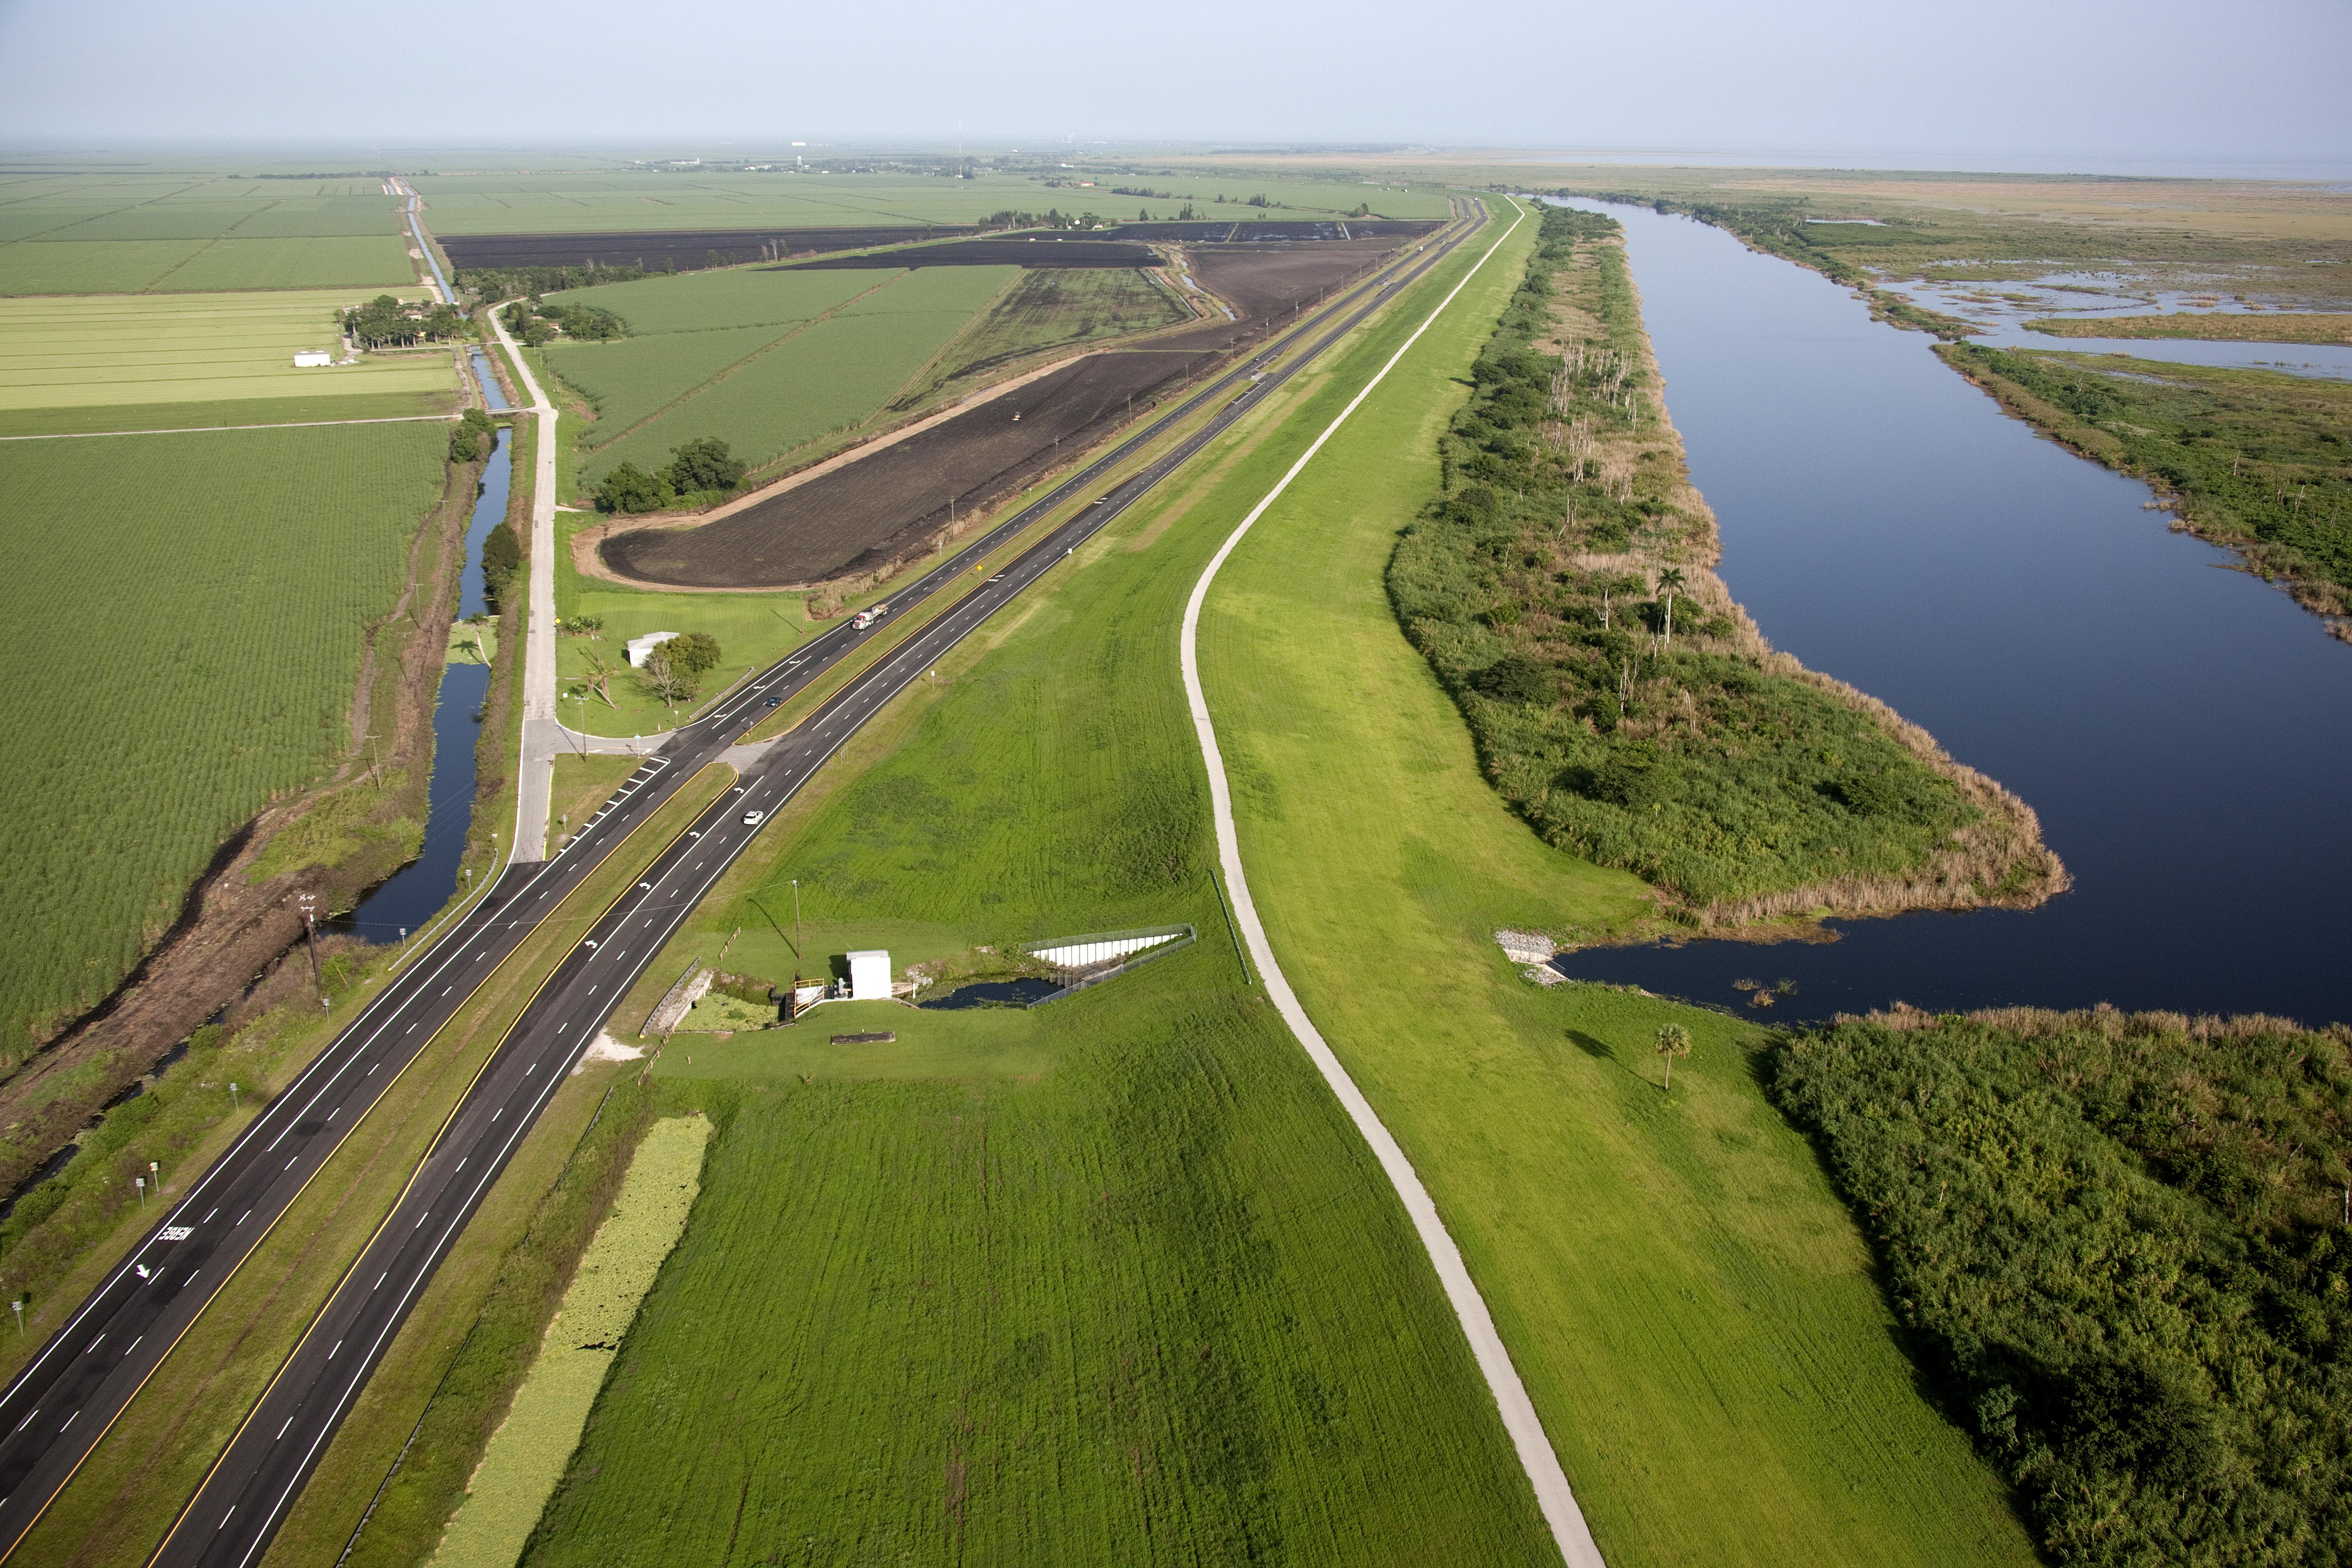 The Lake Okeechobee Scenic Trail, crown of the Herbert Hoover Dike, which surrounds Lake Okeechobee. This section is near South Bay at the southernmost end of the lake. (Photo by Mark Bias) Via Creative Commons, JaxStrong.